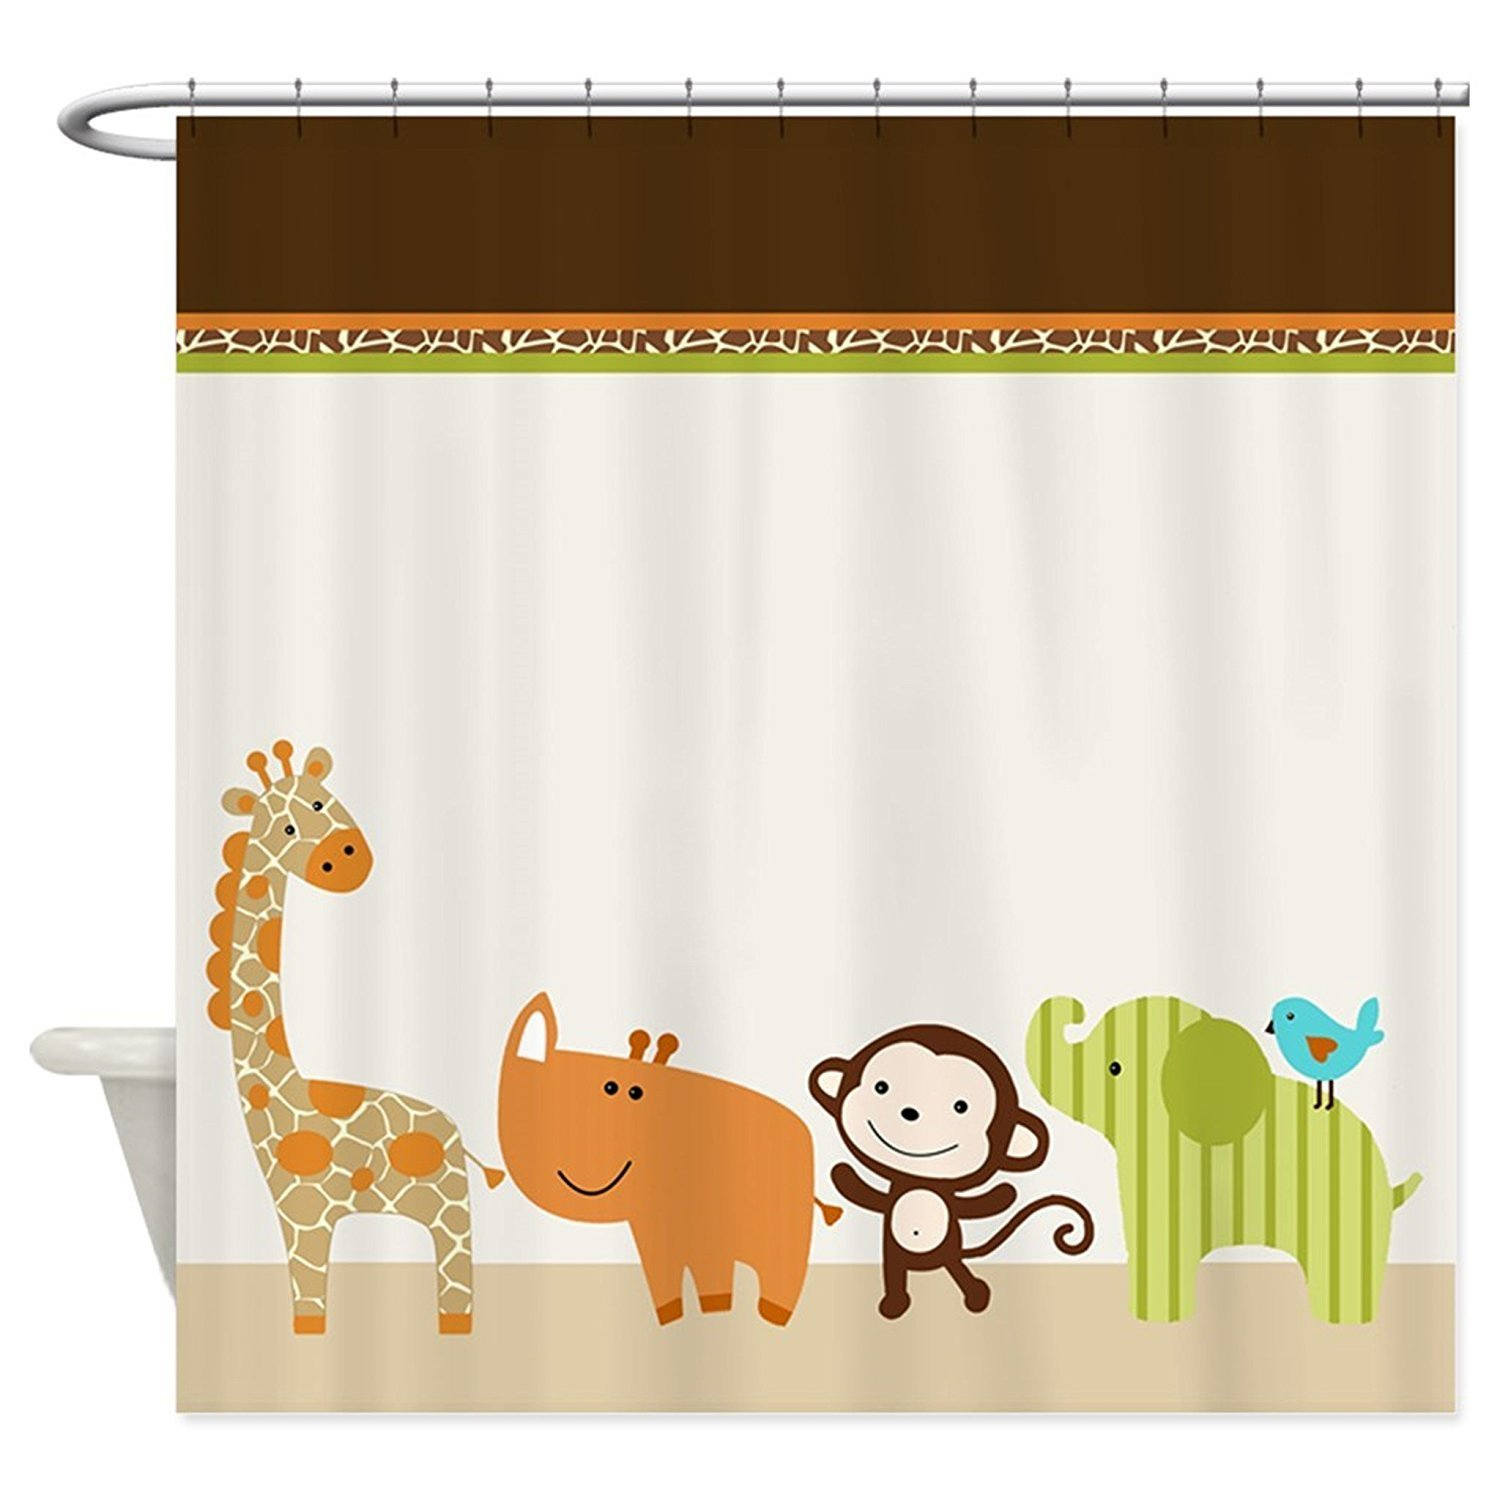 Curtain clipart violet Shower lots Curtain Liner Buy